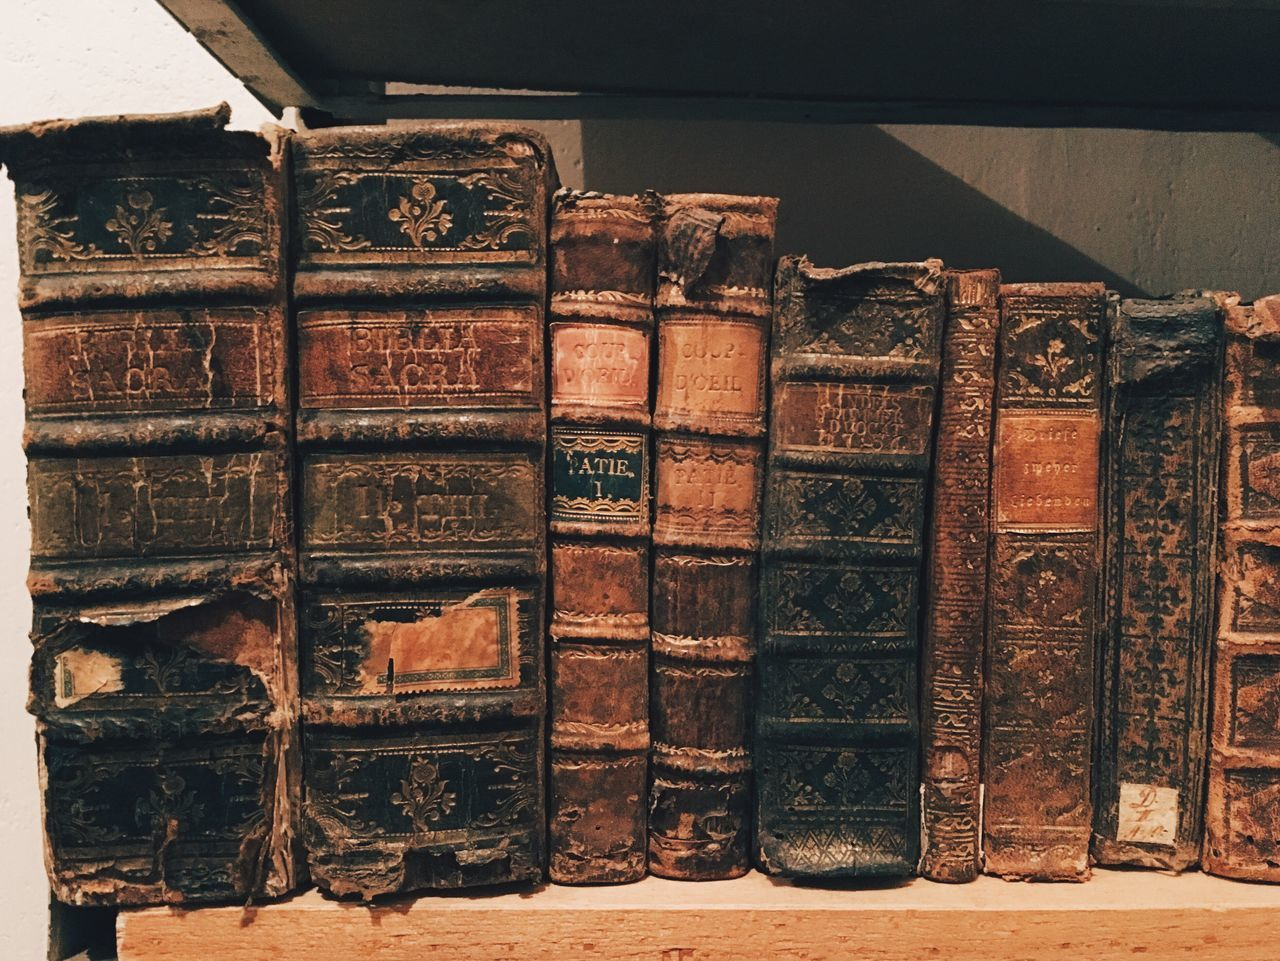 Antique Books On Shelf At Museum